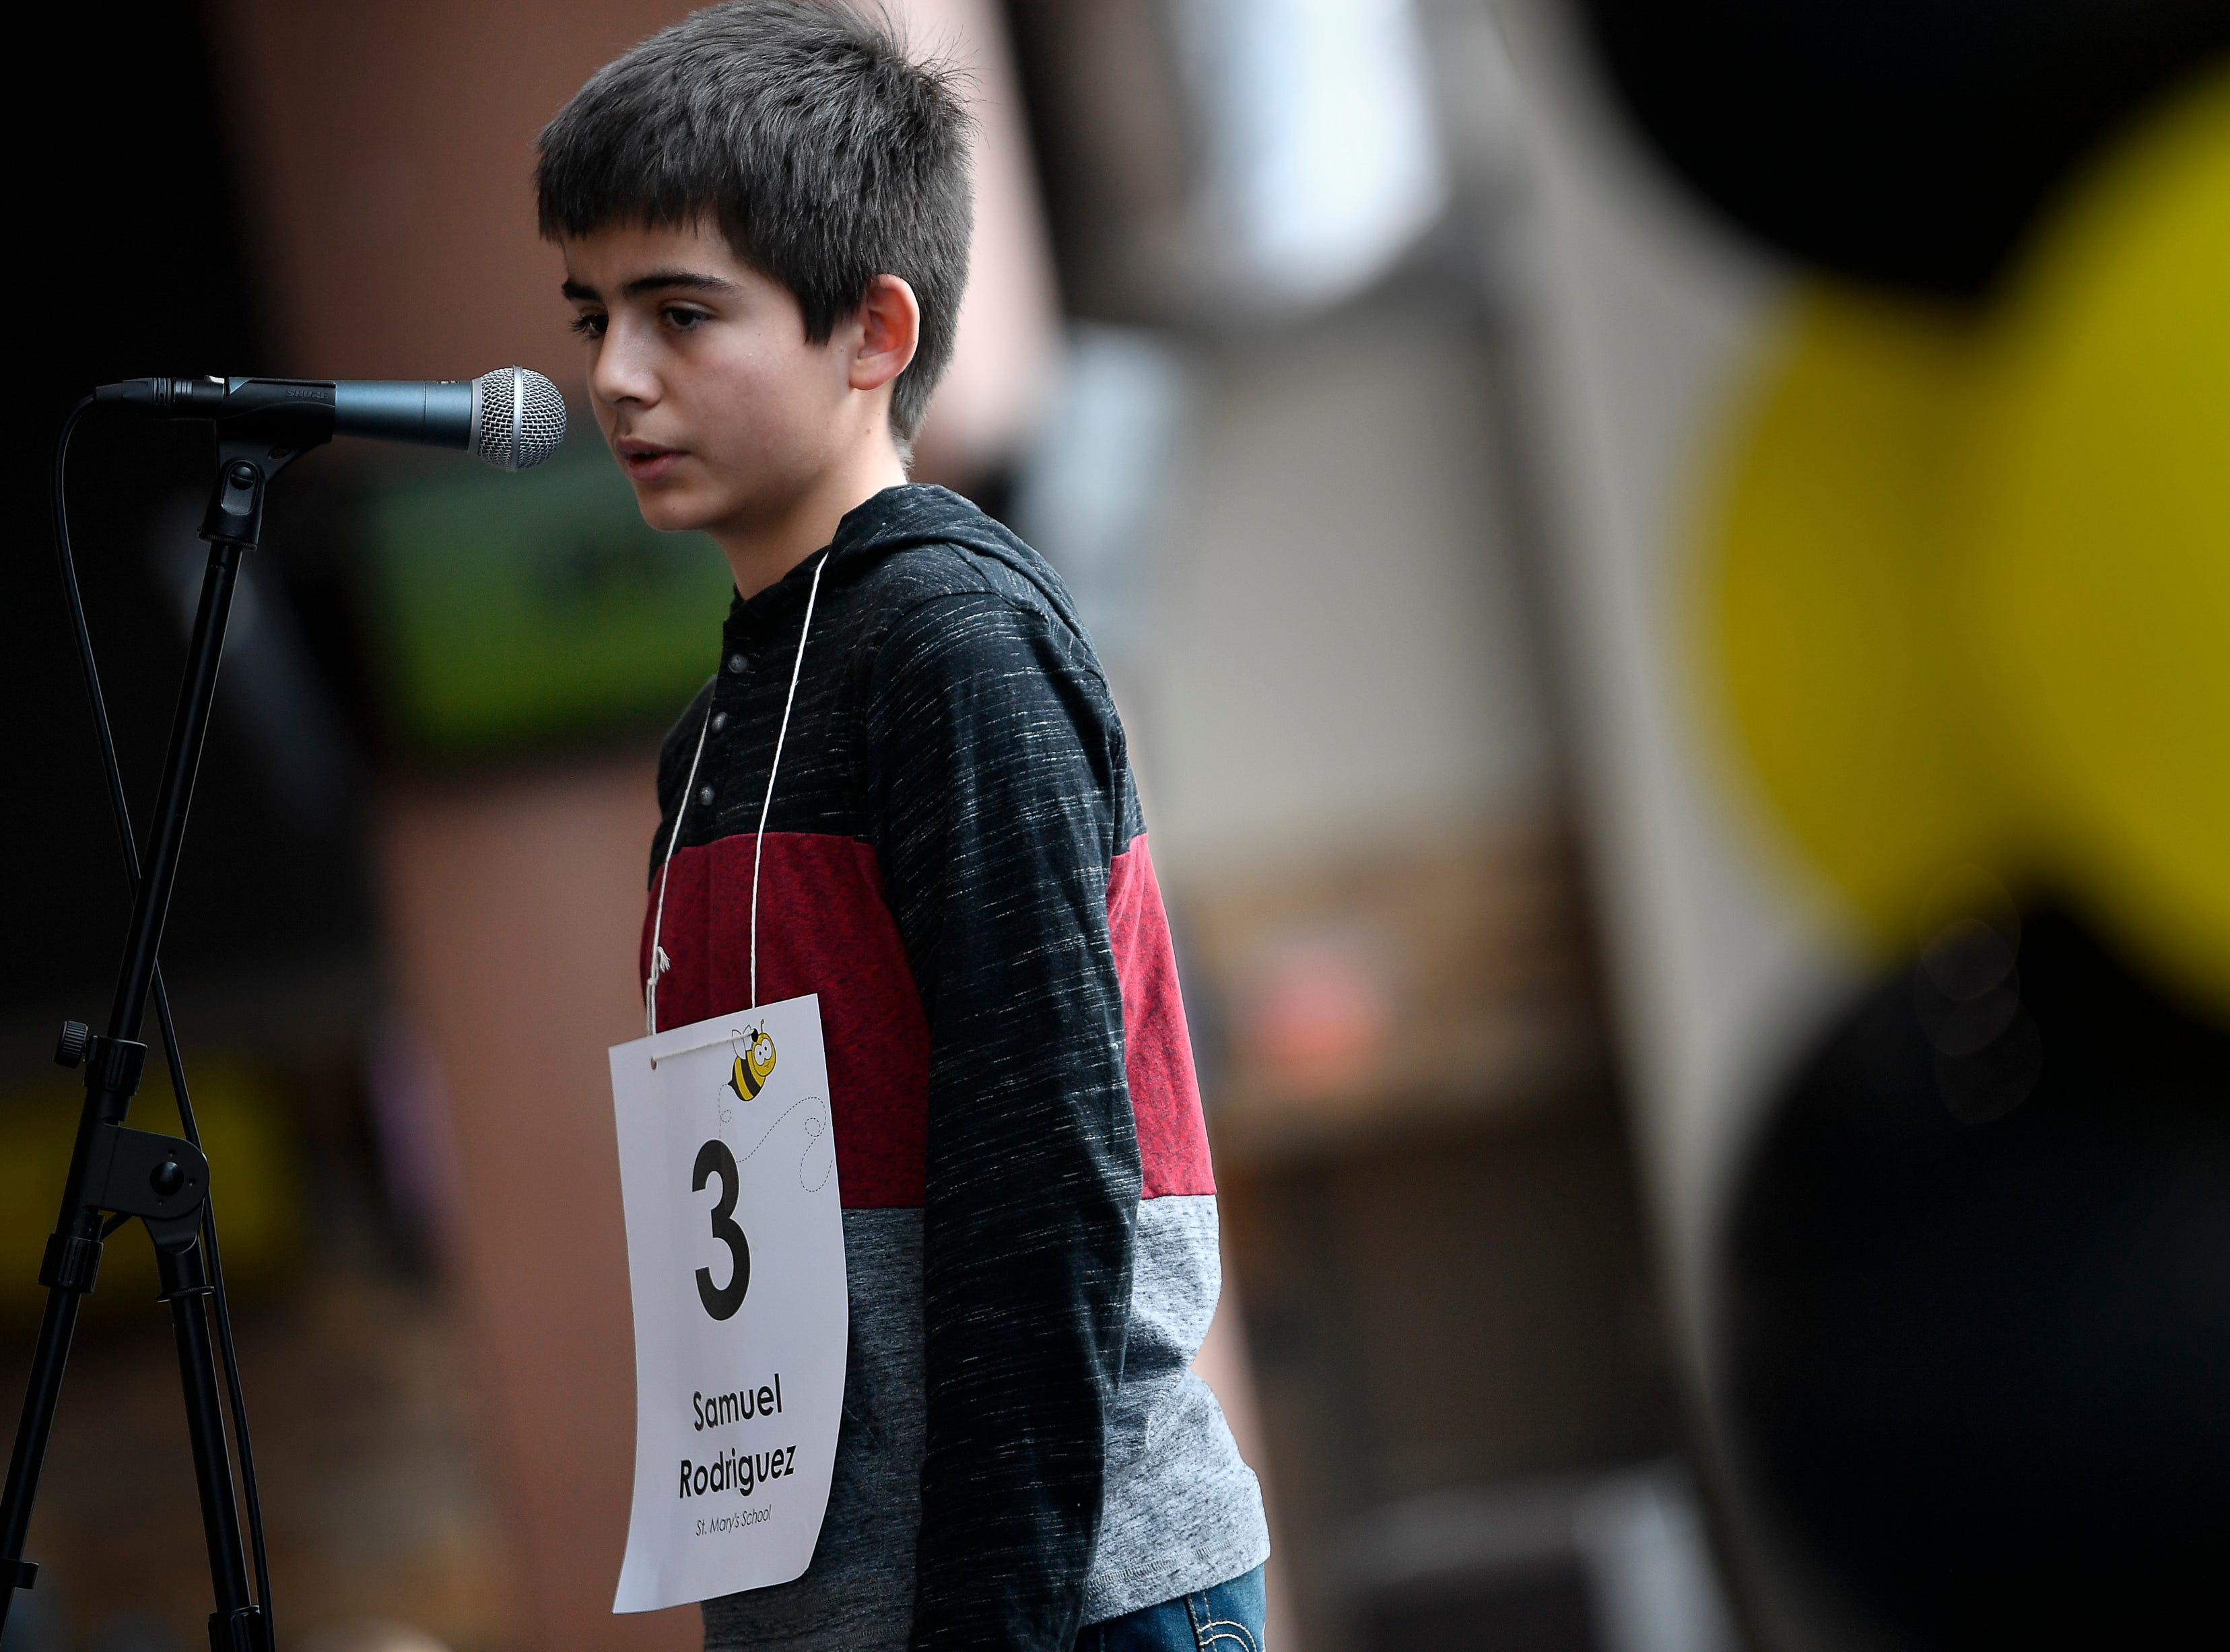 Samuel Rodriguez competes in the Tennessee Titans Regional Spelling Bee at Nissan Stadium Saturday, Feb. 16, 2019 in Nashville, Tenn.